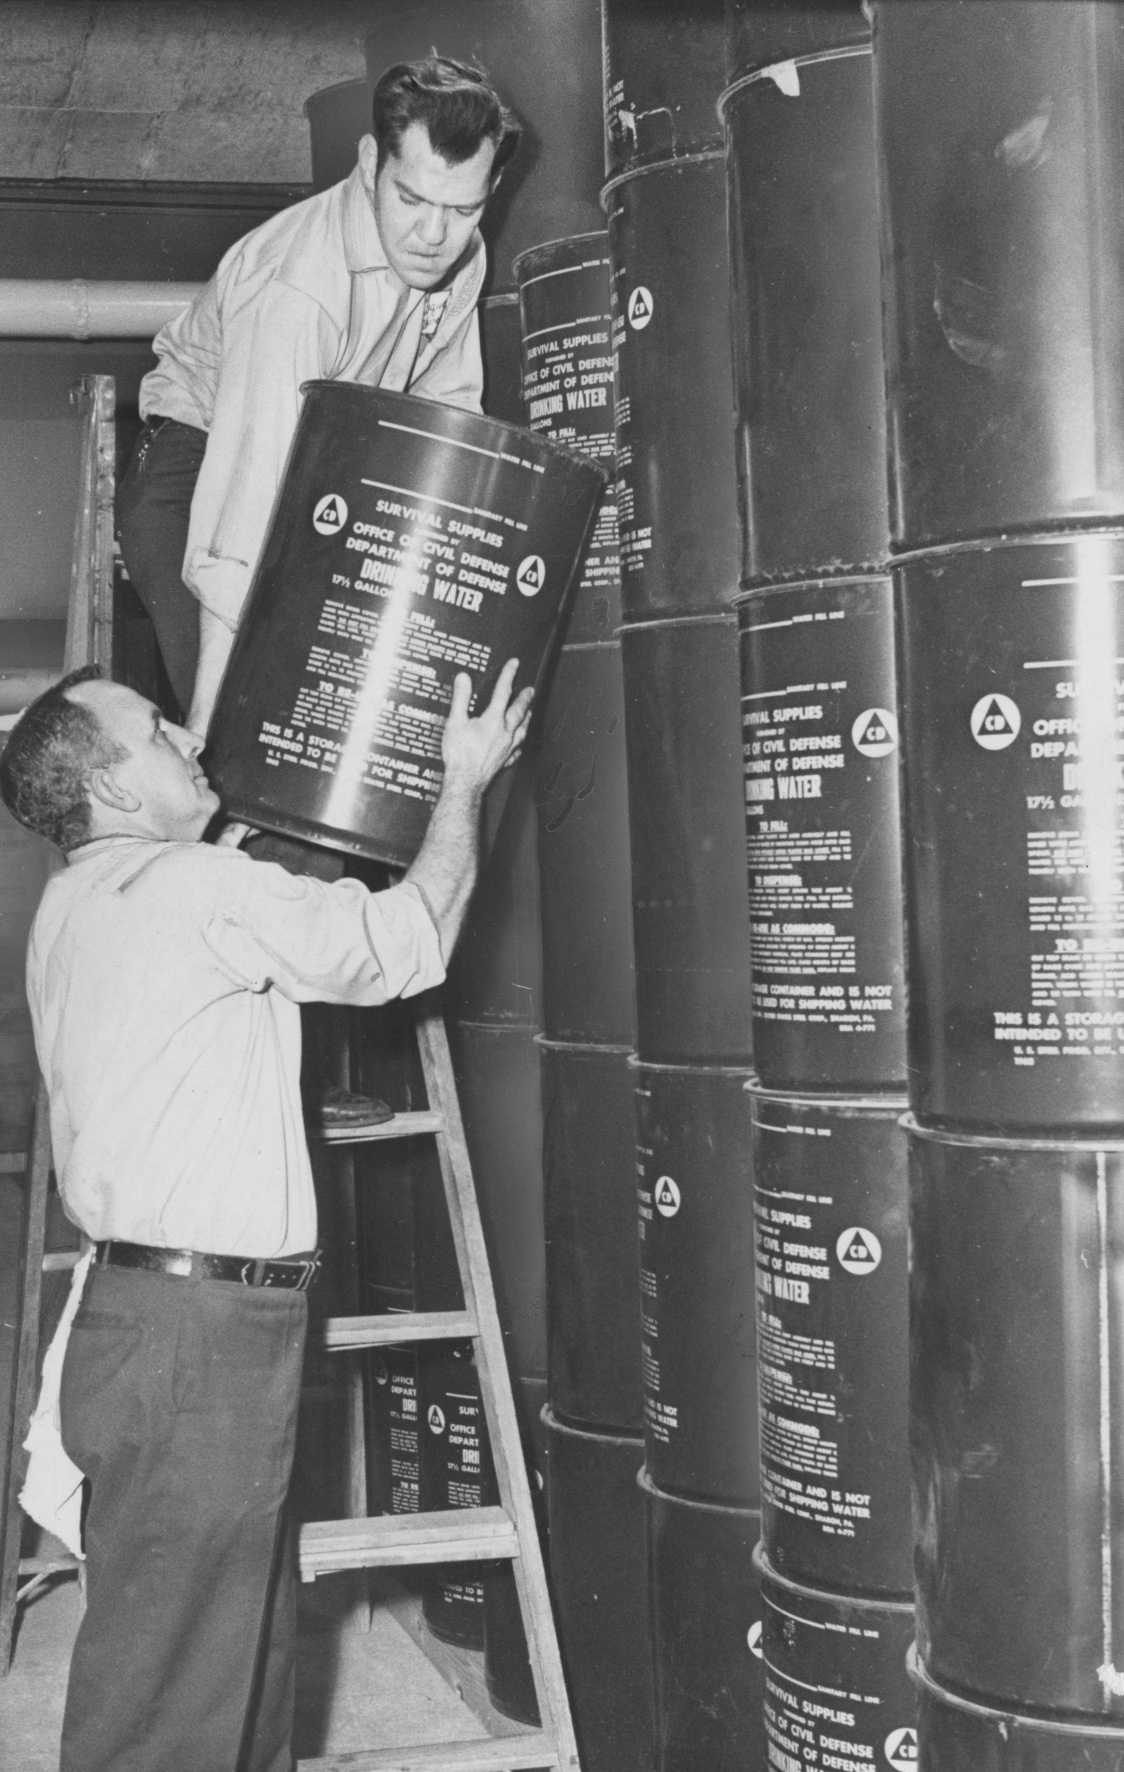 Feb. 5, 1970: Two employees of Duquesne University's housekeeping department, Milton Geisler, left, and James Apostal, lift a 17 1/2 gallon can of water into place in the fallout shelter beneath the school's student union building. (Anthony Kaminski/The Pittsburgh Press)